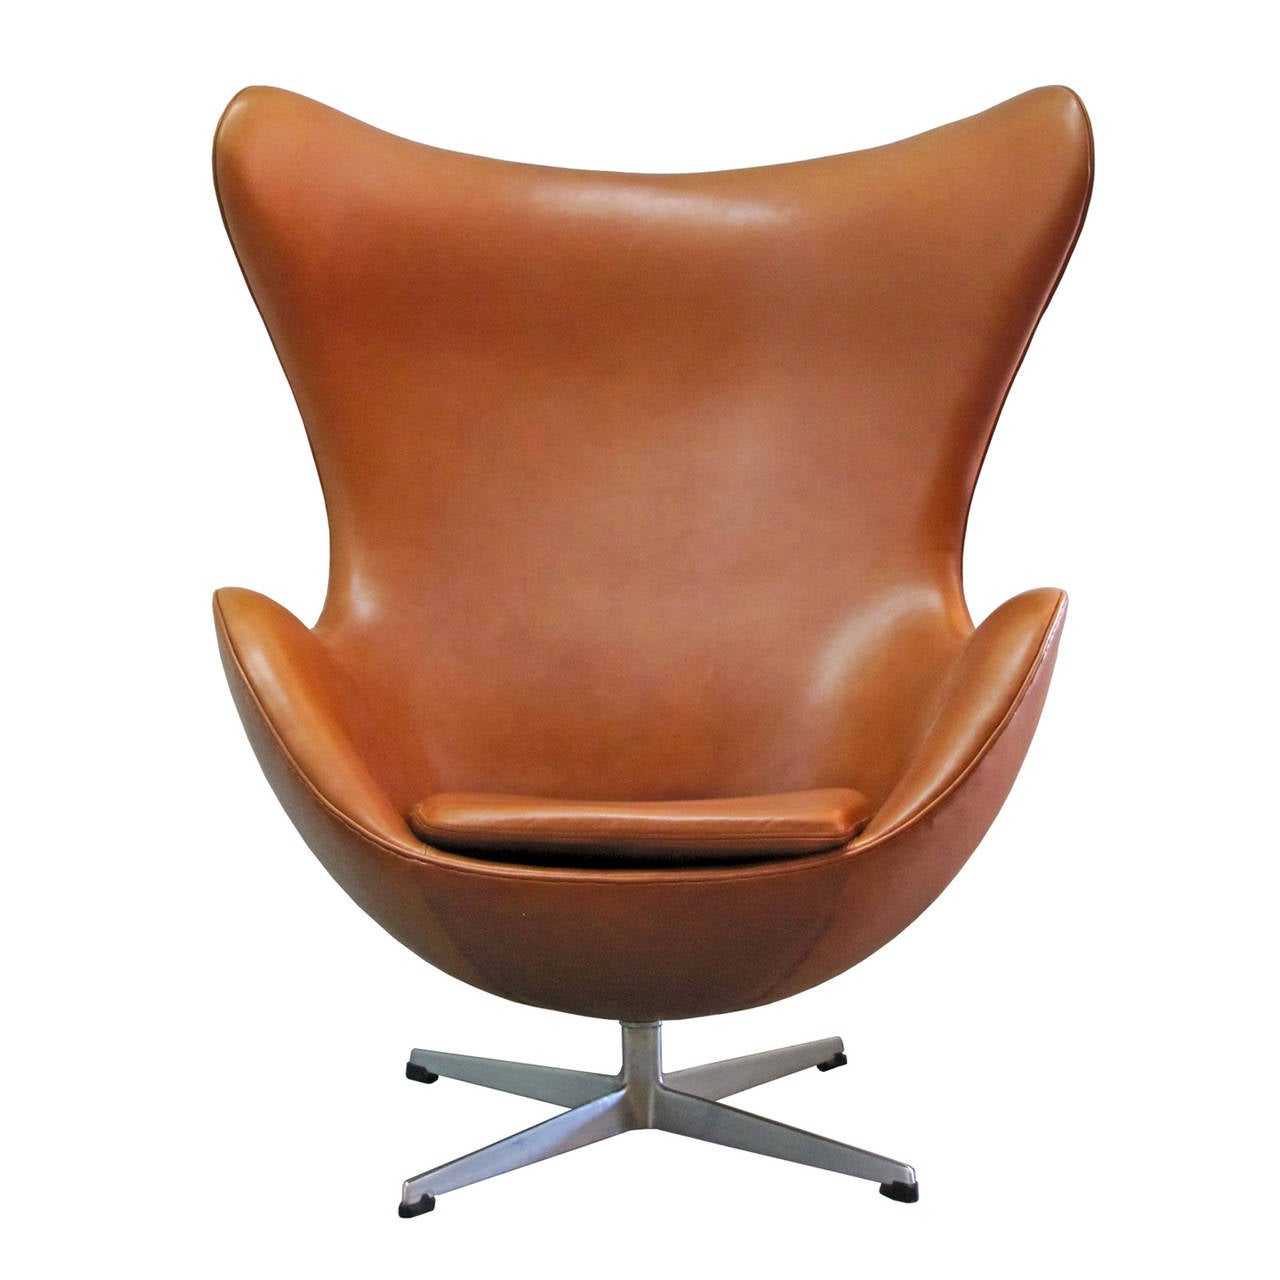 Arne jacobsen egg chair at 1stdibs for Chair chair chair